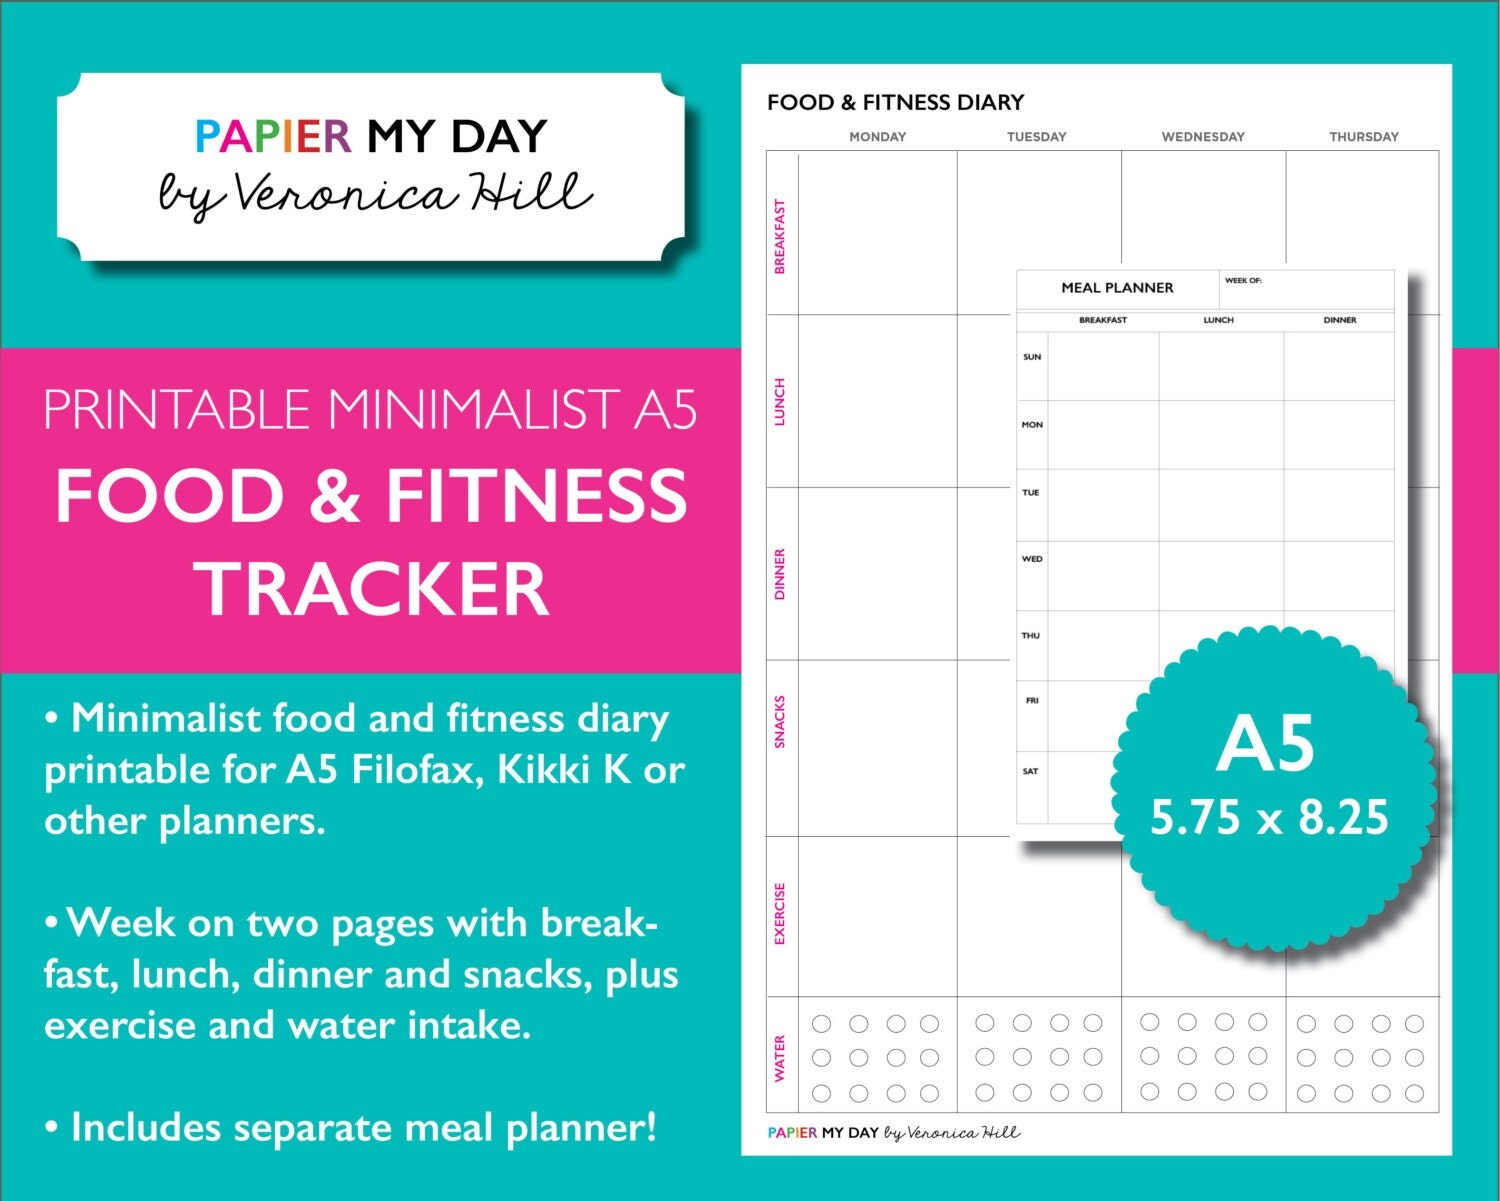 A5 Filofax Food And Fitness Planner Inserts Printable Meal